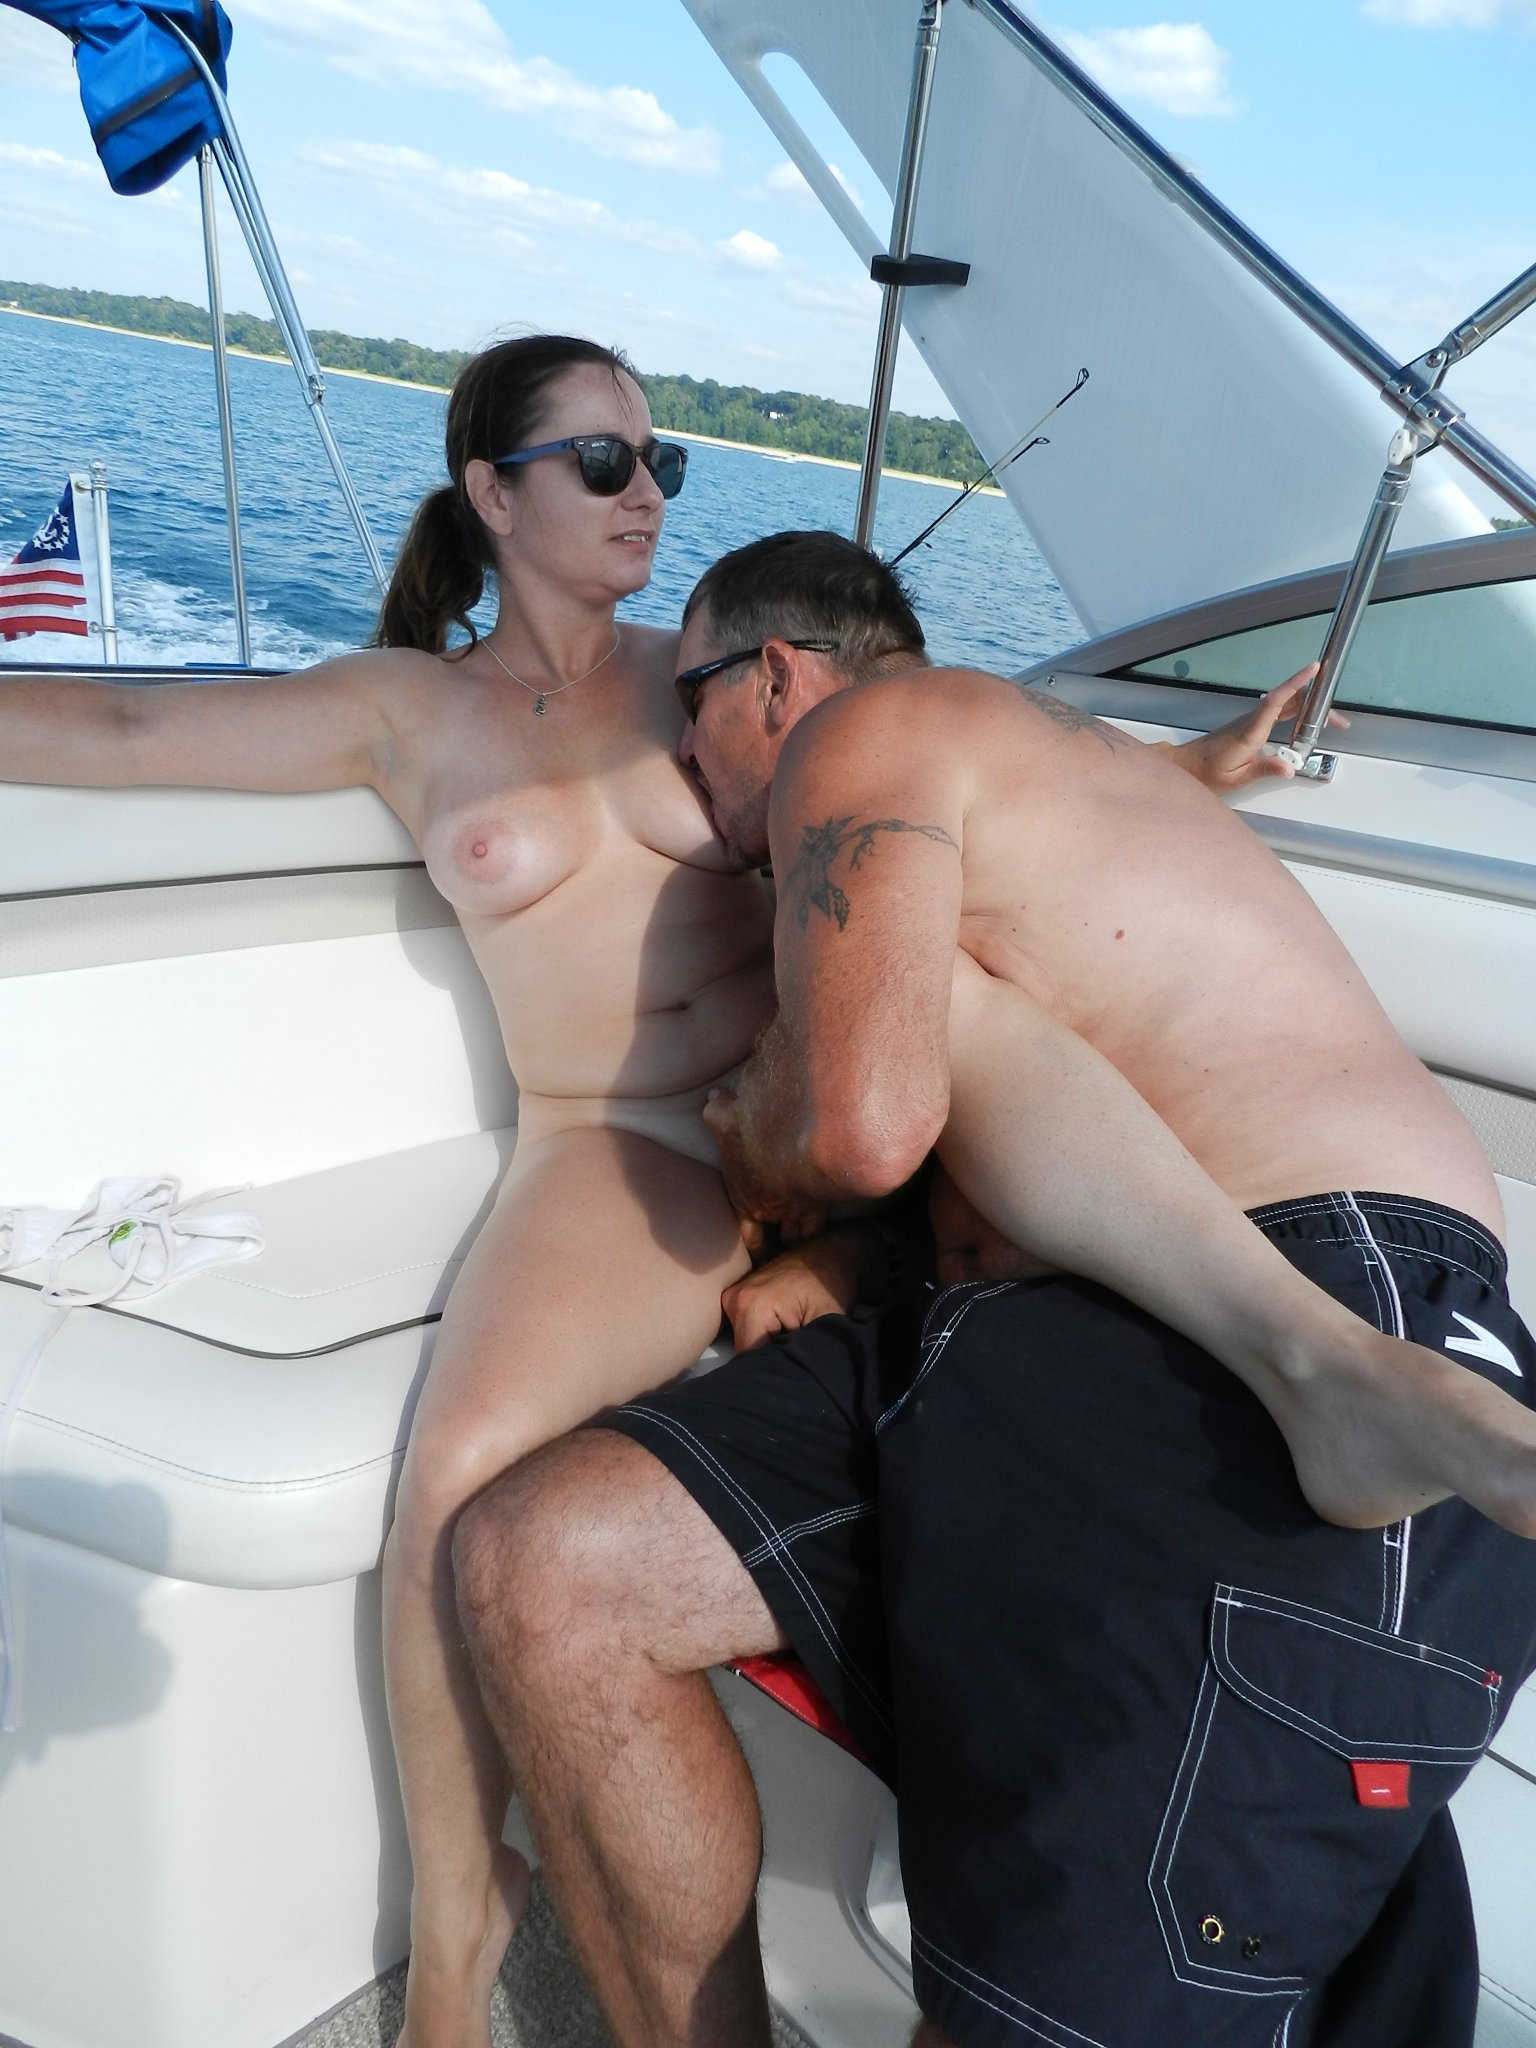 Huge Boobs Bounces On The Boat